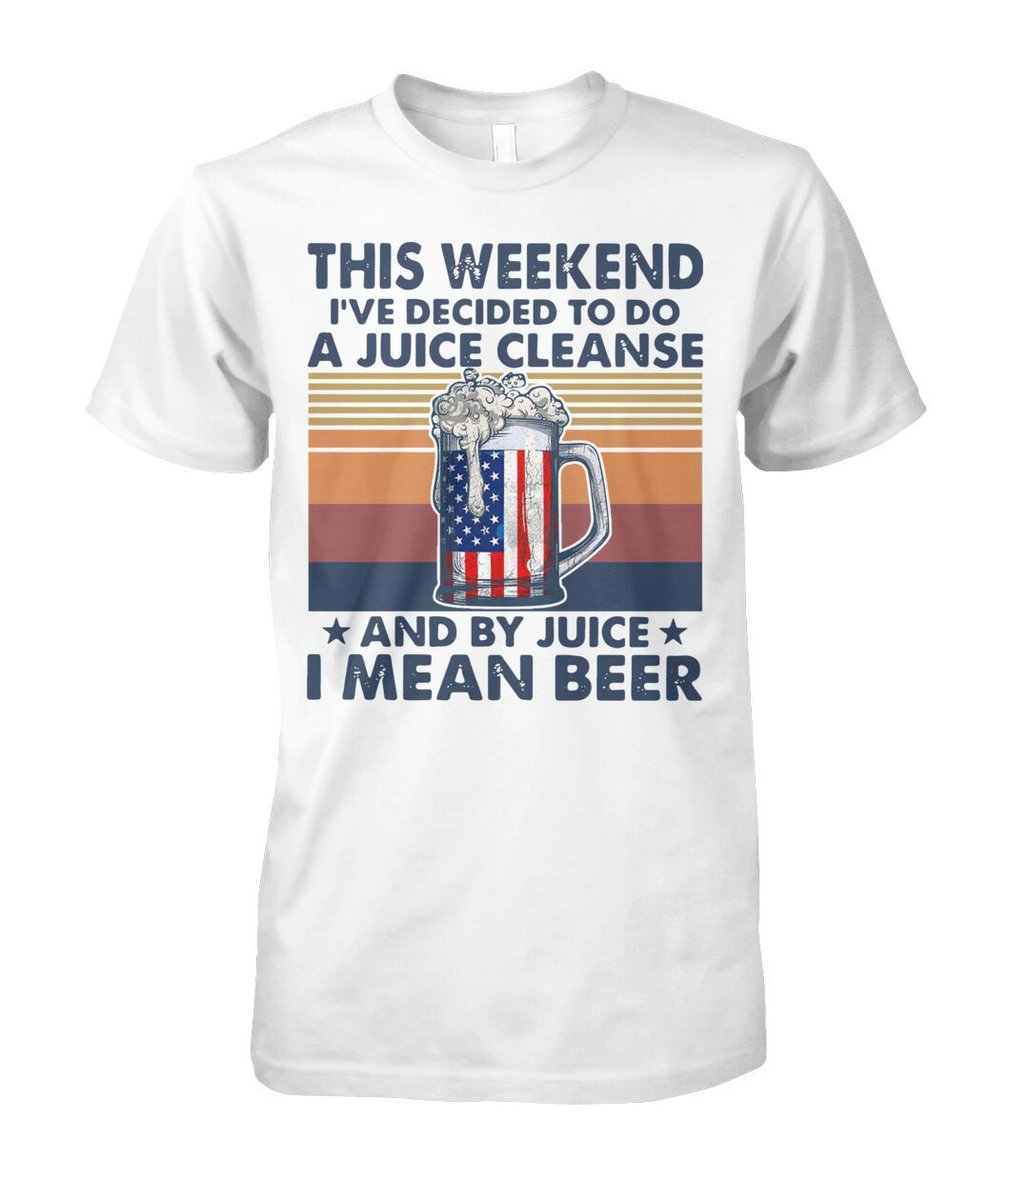 THIS WEEKEND I VE DECIDED TO DO A JUICE CLEANSE AND BY JUICE I MEAN BEER VINTAGE   Buy here: https://buff.ly/2ZoCZeW  Available in Multiple styles and colors #viralstyle #usa #us #tshirt #hoodie #tee #hottrend #quote #shirt #shirts #shirtless #shirtlessguys #shirtdesign pic.twitter.com/zz6Tfs1iEz